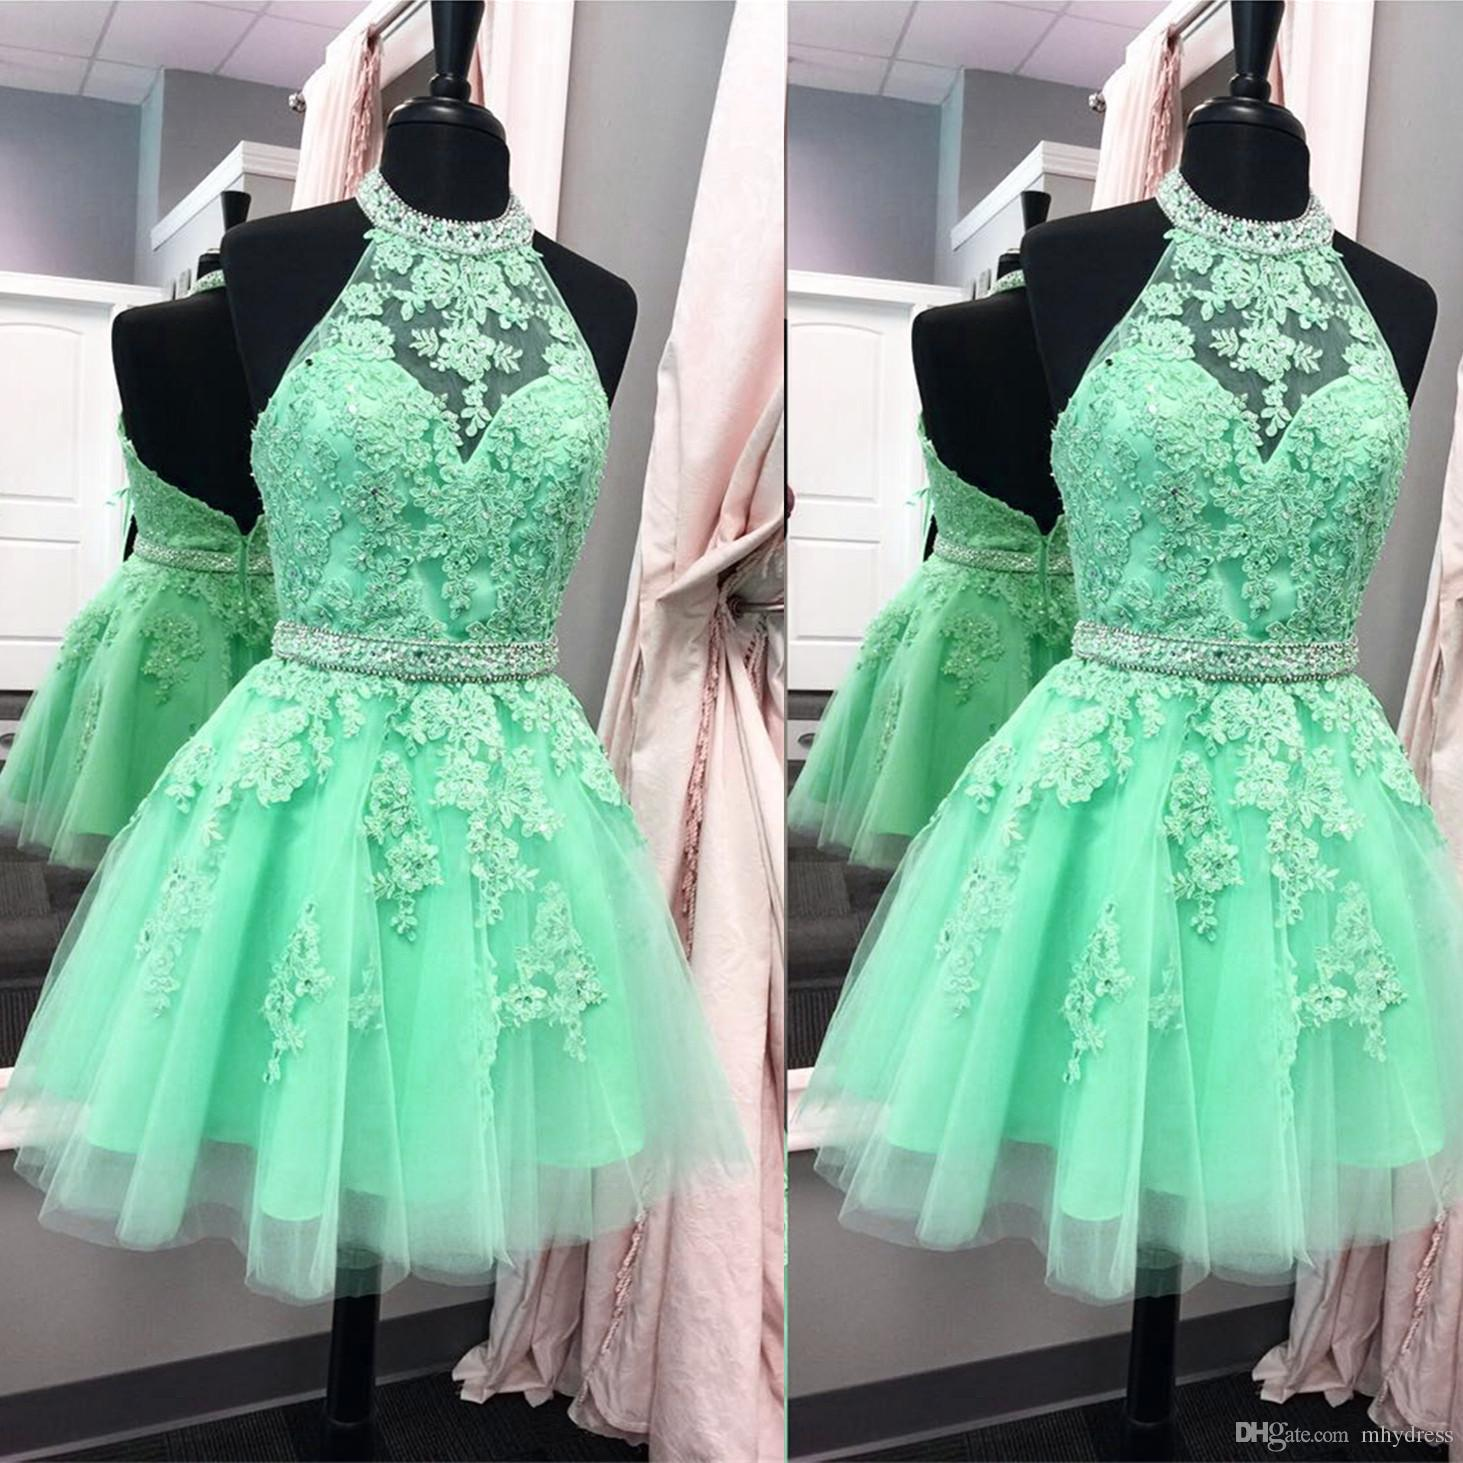 590759f941 Mint Green Homecoming Dresses 2017 Short Real Image Open Back Cocktail Party  Dress Halter Sheer Prom Gowns Free Homecoming Dresses Good Homecoming Dress  ...